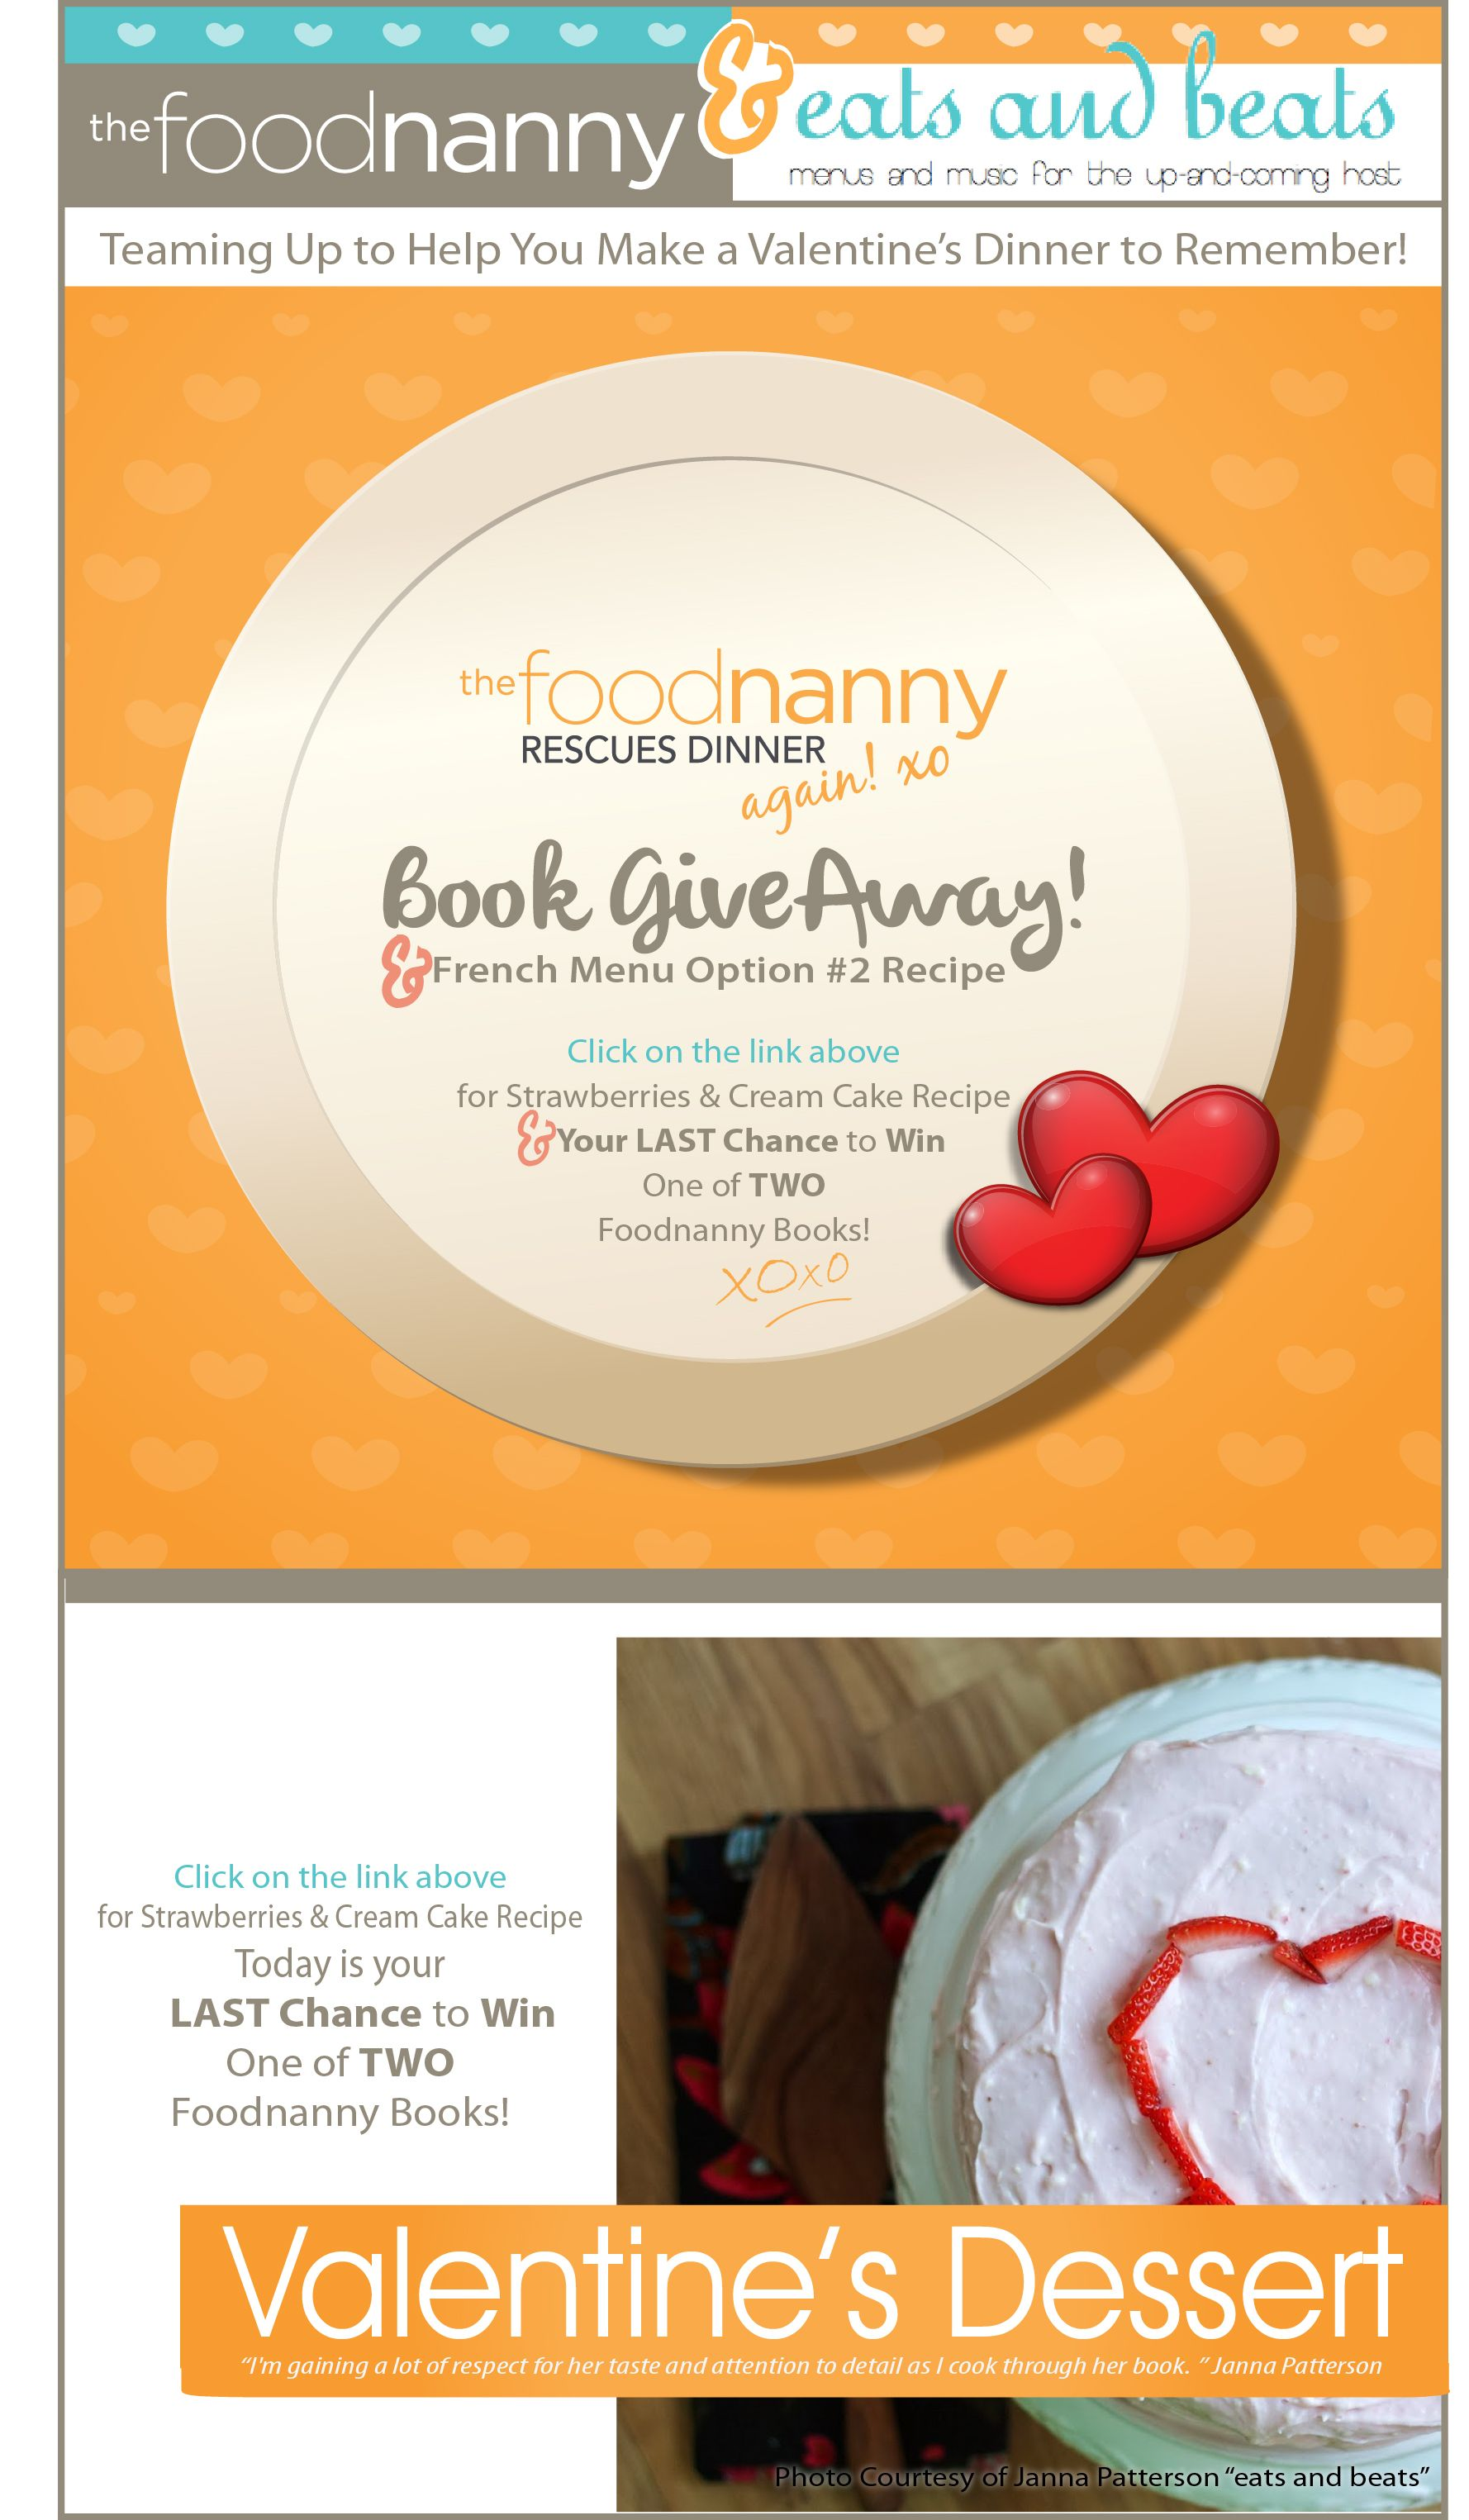 Delicious Valentine Dinner Recipes & Your Chance to Win a Food Nanny Book!